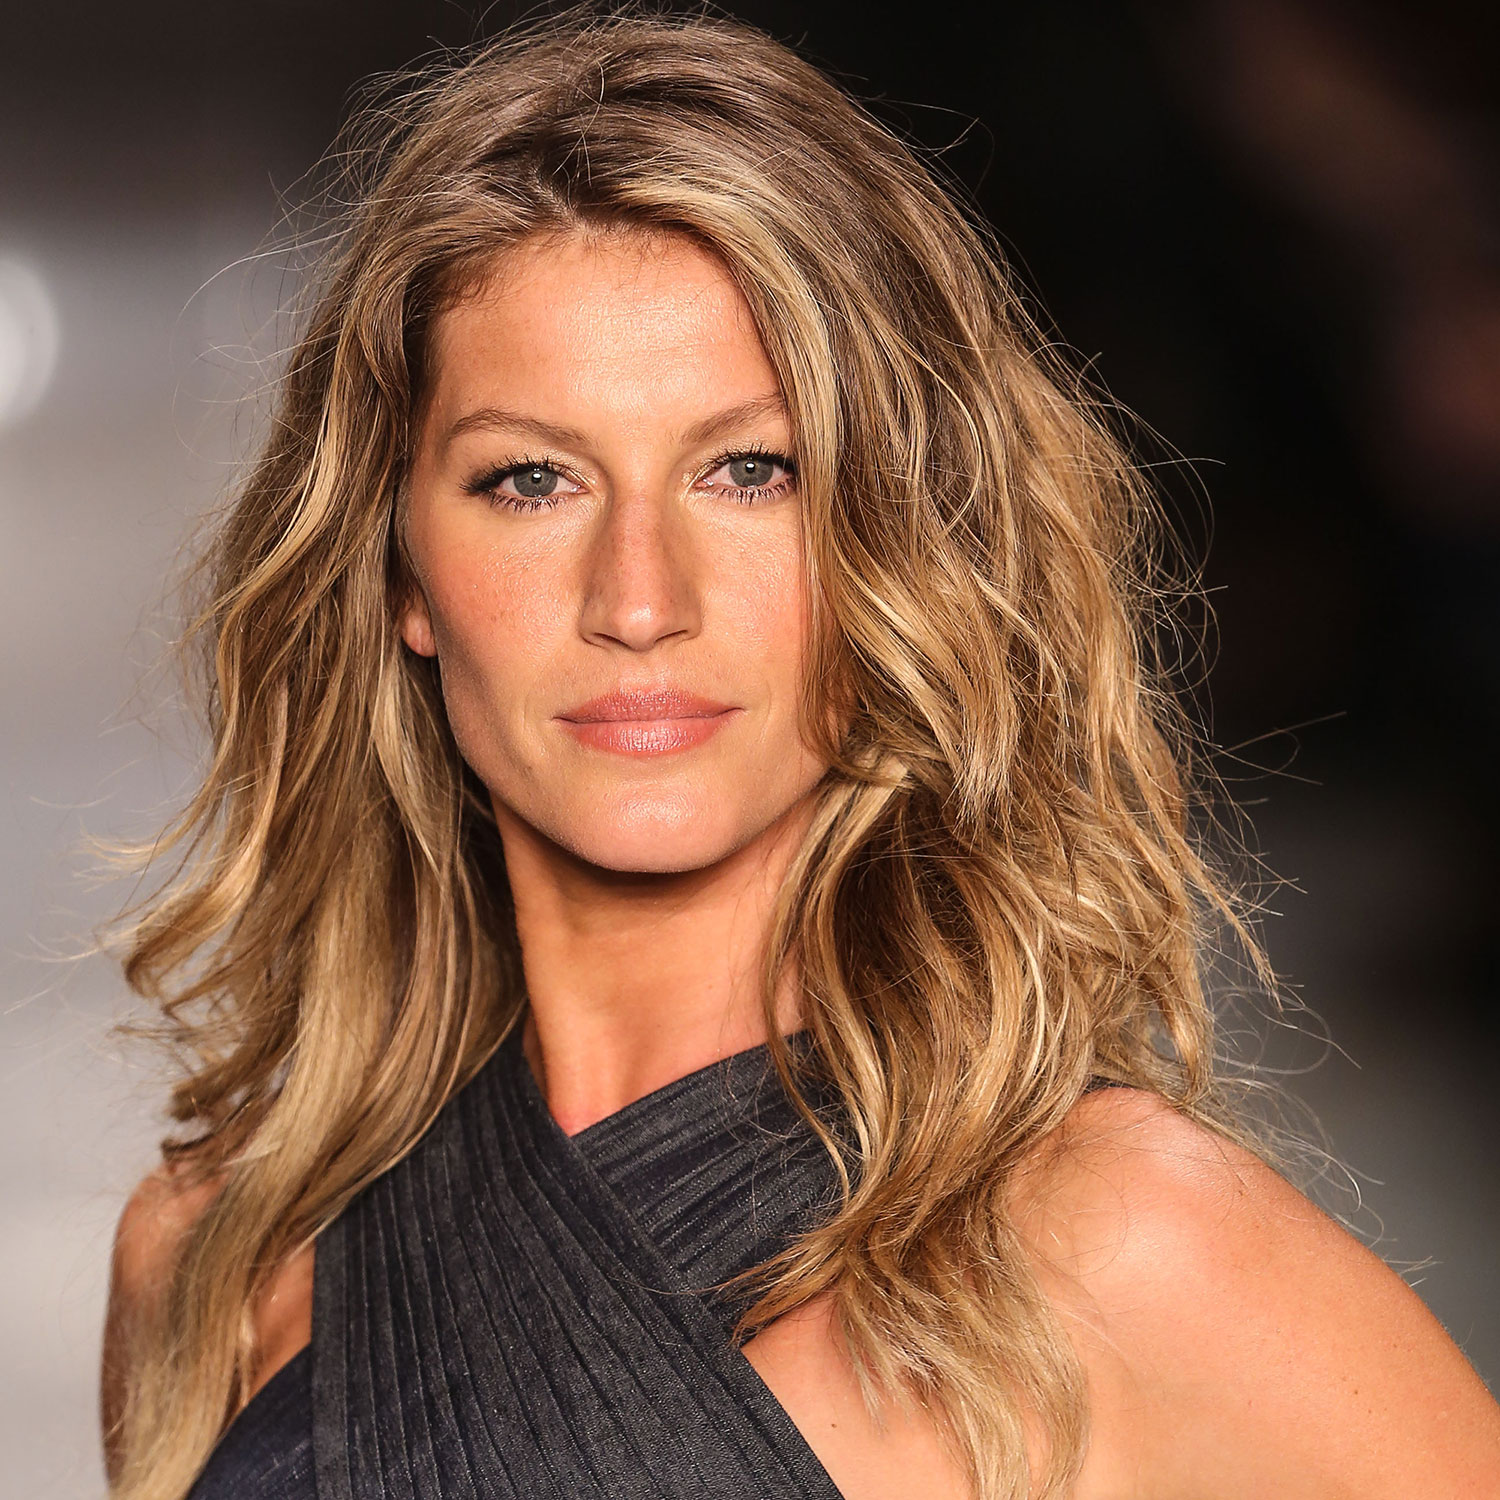 Gisele Bundchen Audited for Highest-Paid Model Ranking ... Gisele Bundchen